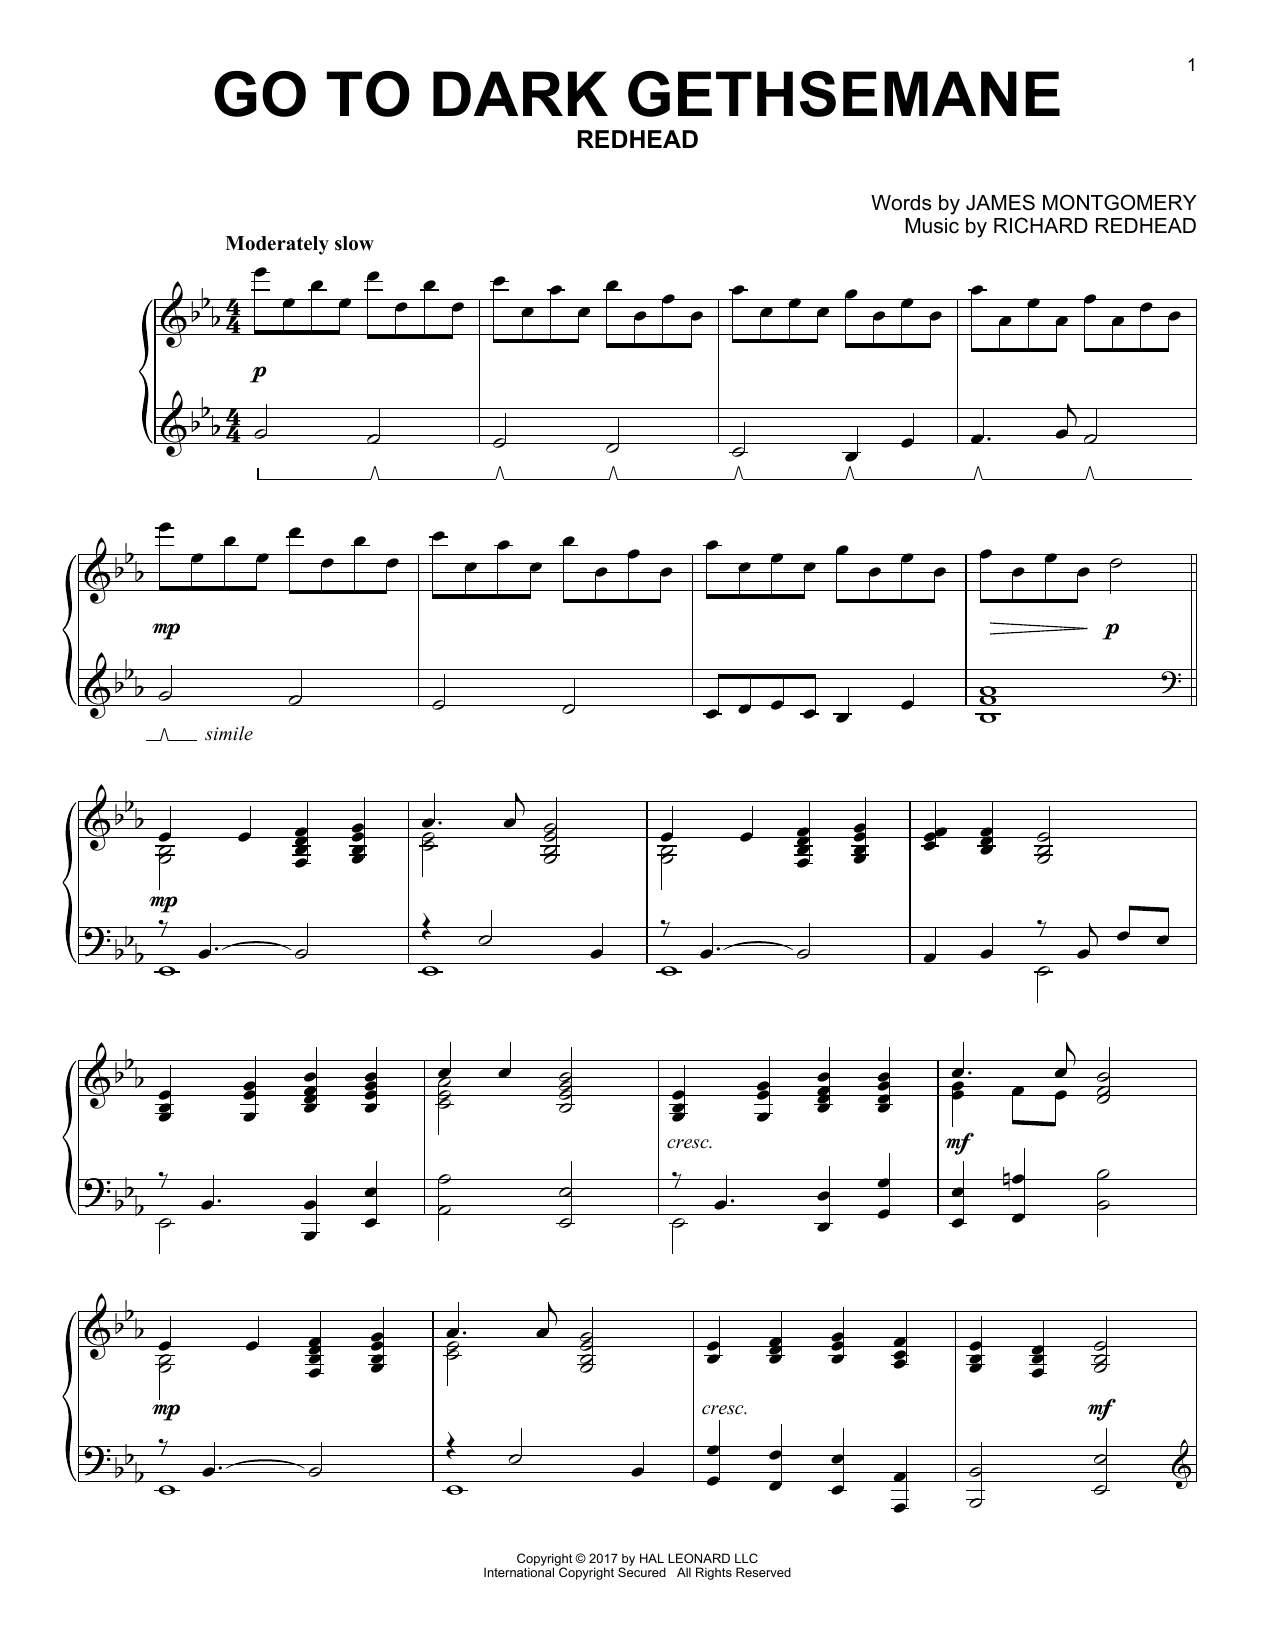 James Montgomery Go To Dark Gethsemane sheet music notes and chords. Download Printable PDF.